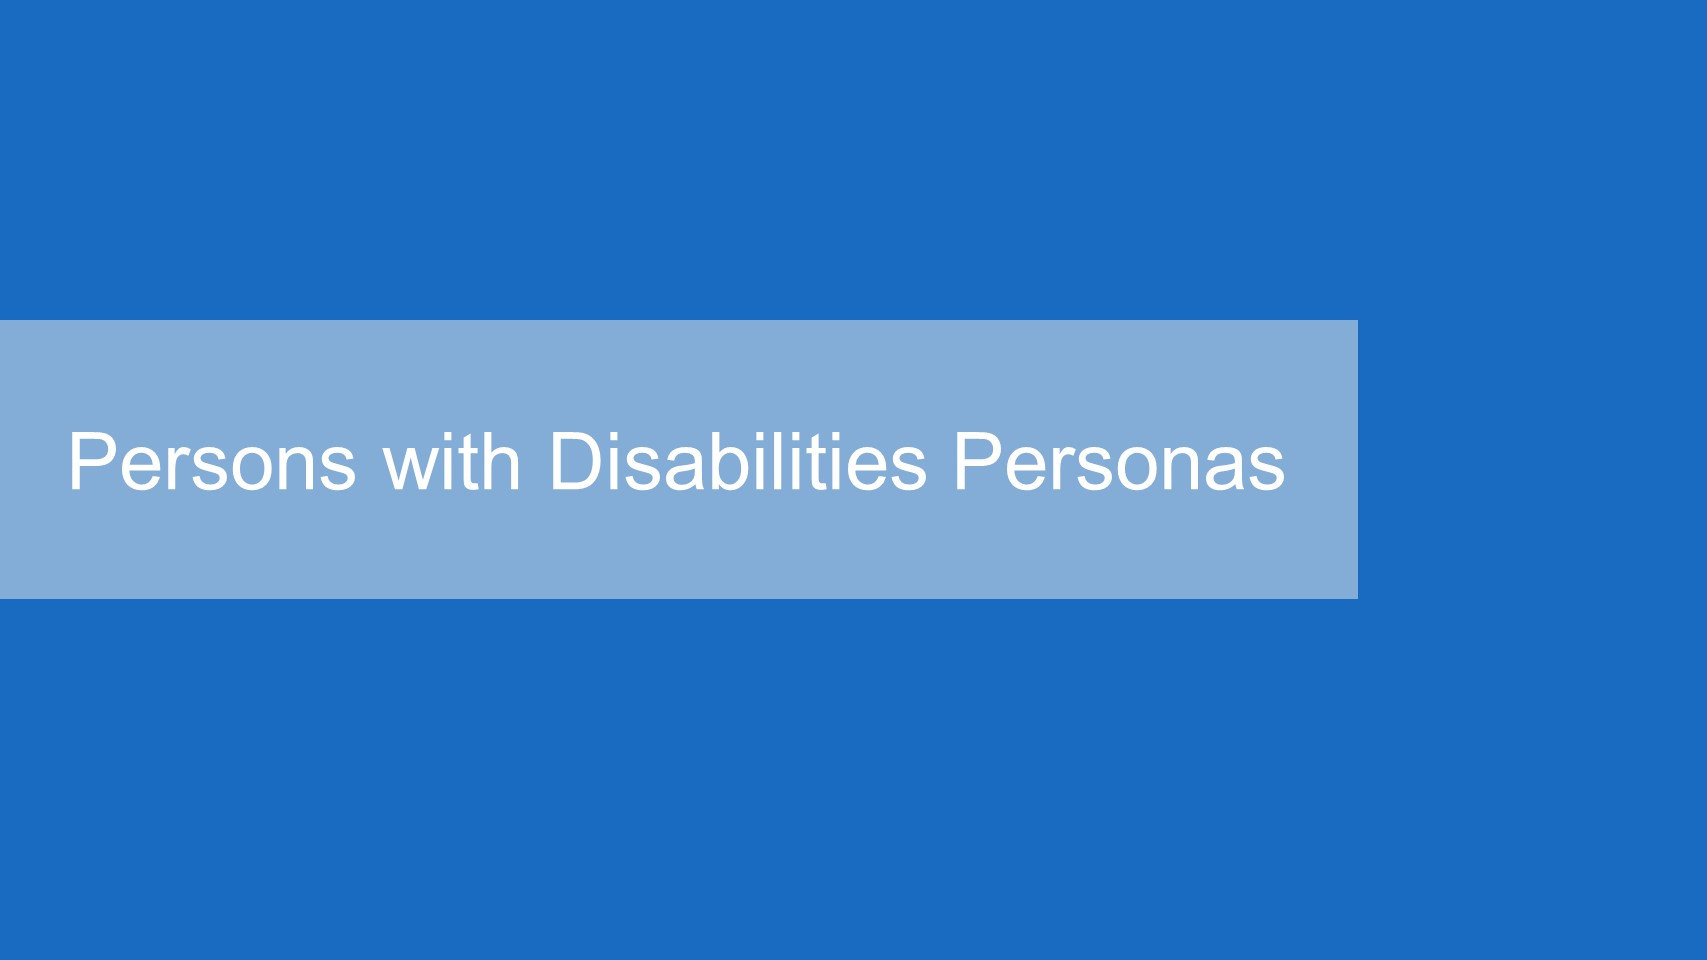 IMPORTED: __media_images_blog_2016_dec_hnhc_personas_slider_under_65_w_disabilities_slide1.jpg